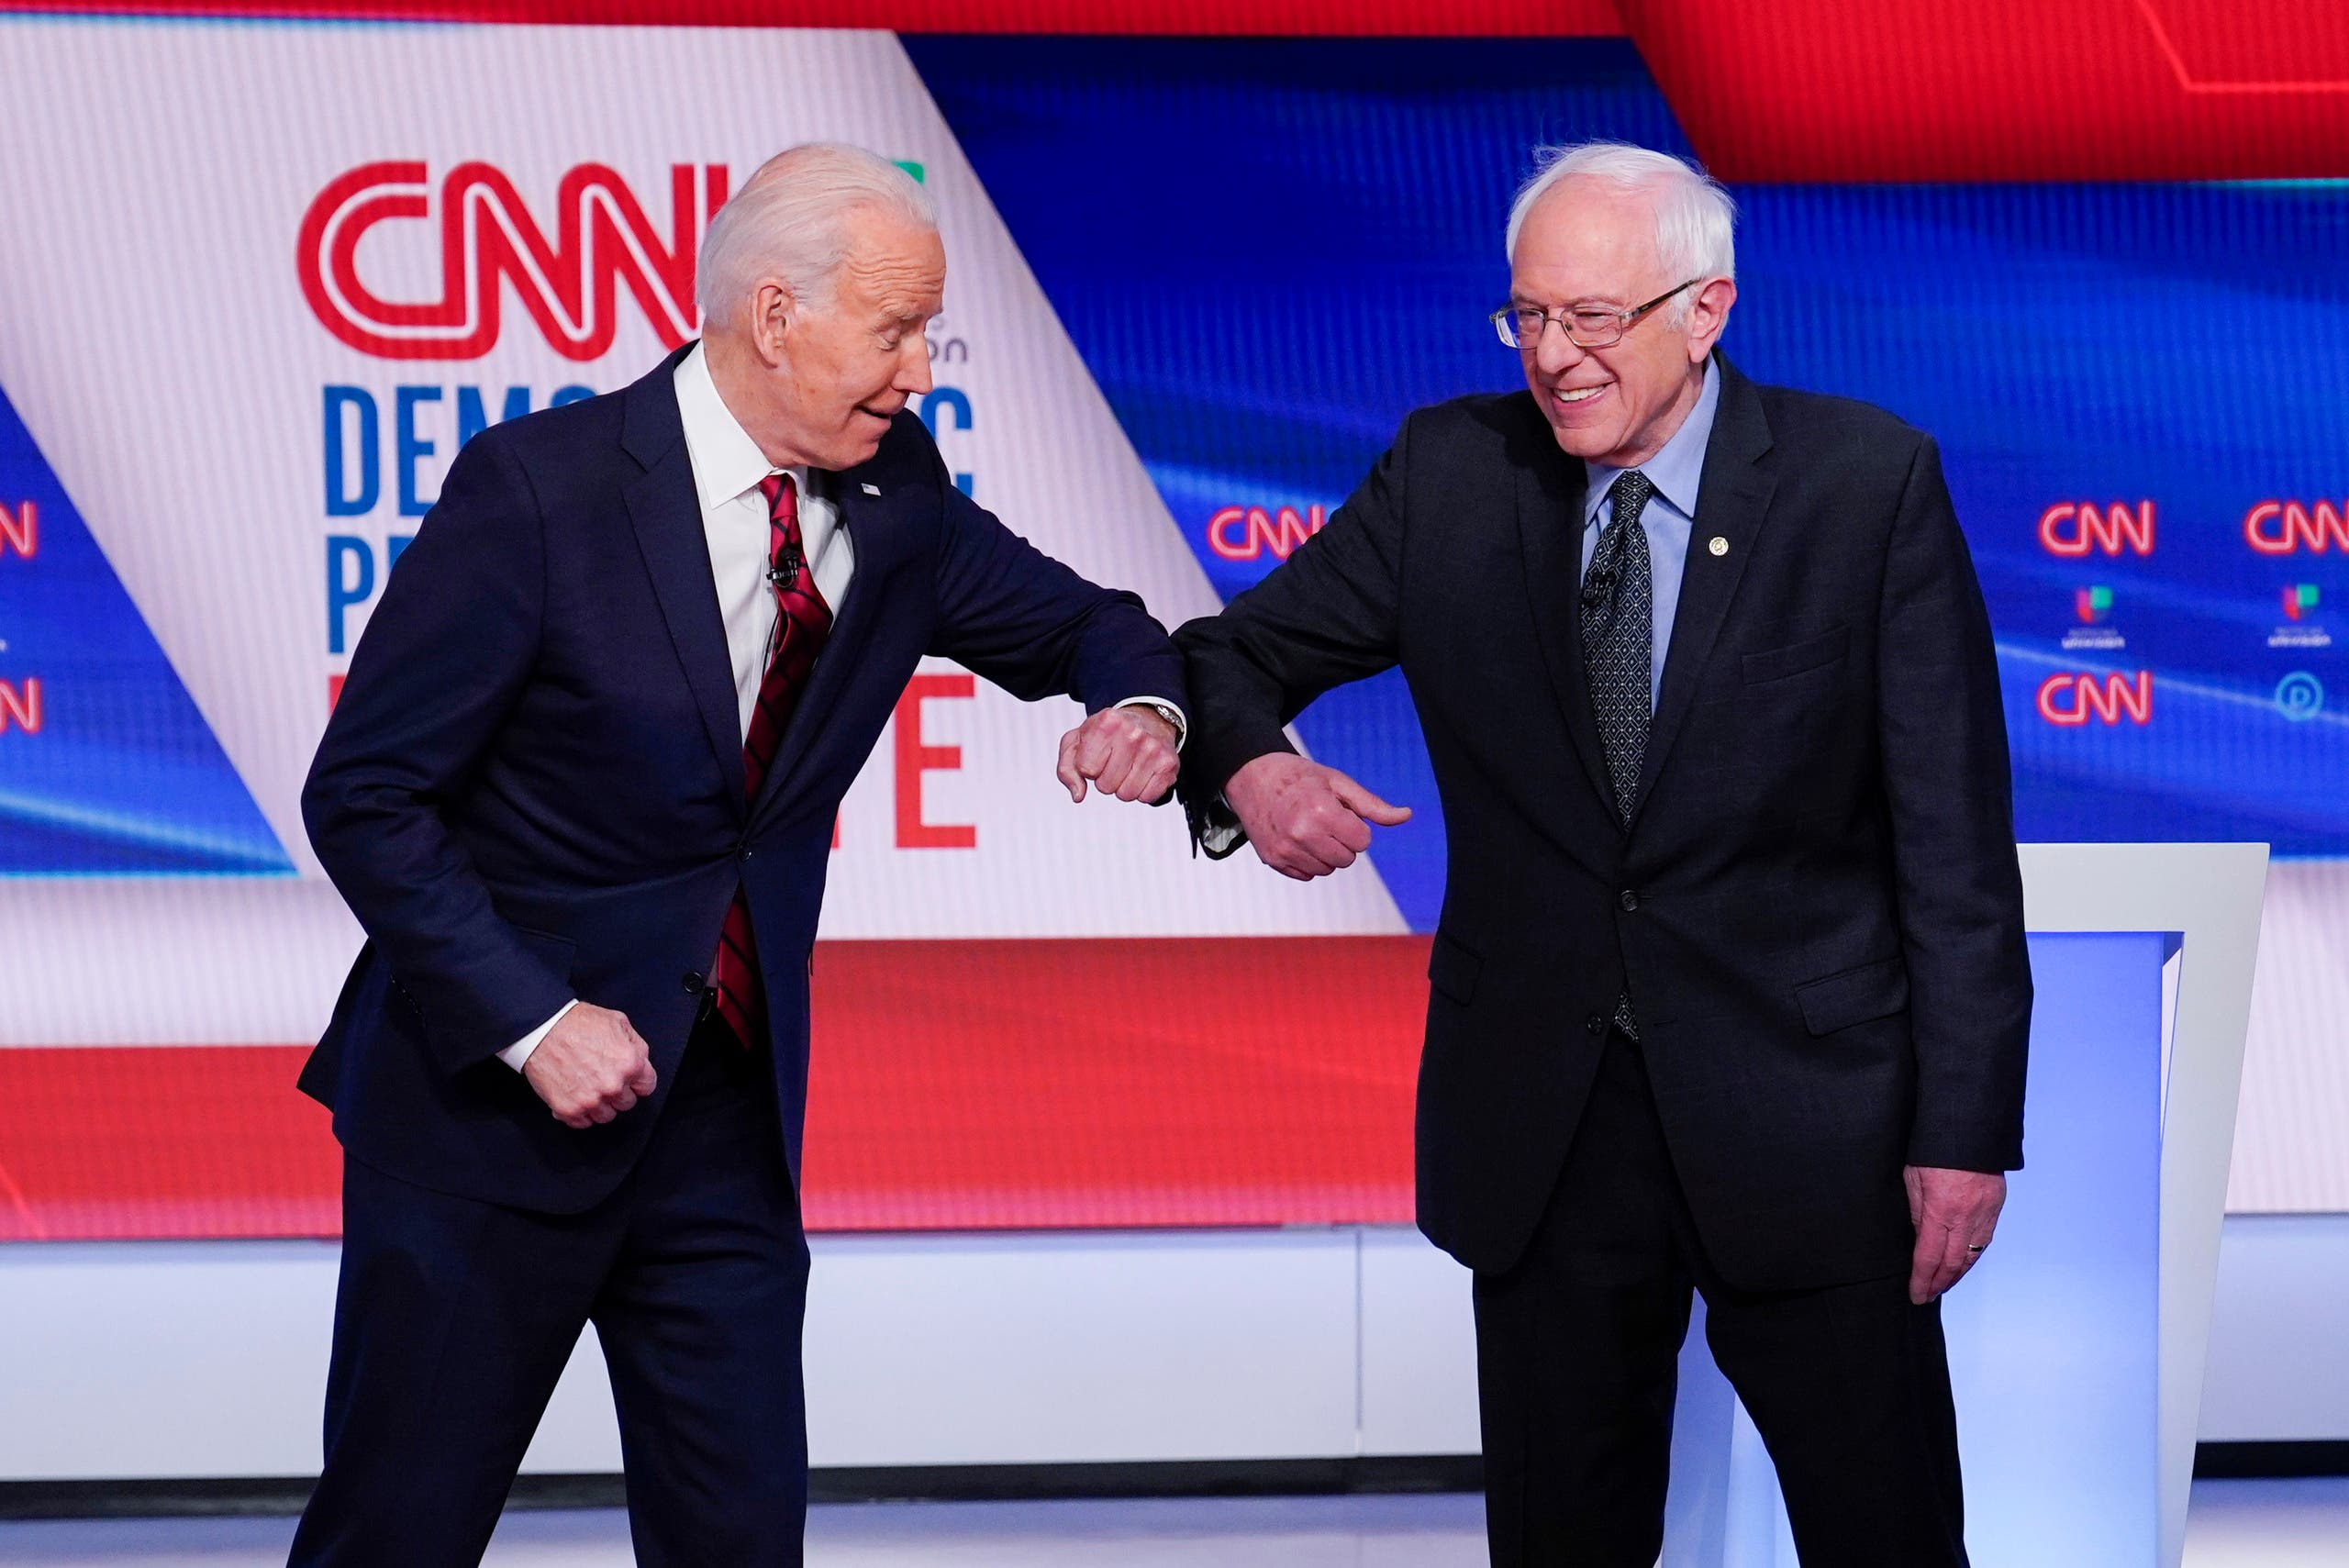 Joe Biden and Bernie Sanders greet one another before they participate in a Democratic presidential primary debate at CNN Studios in Washington on March 15, 2020. (File Photo: AP)